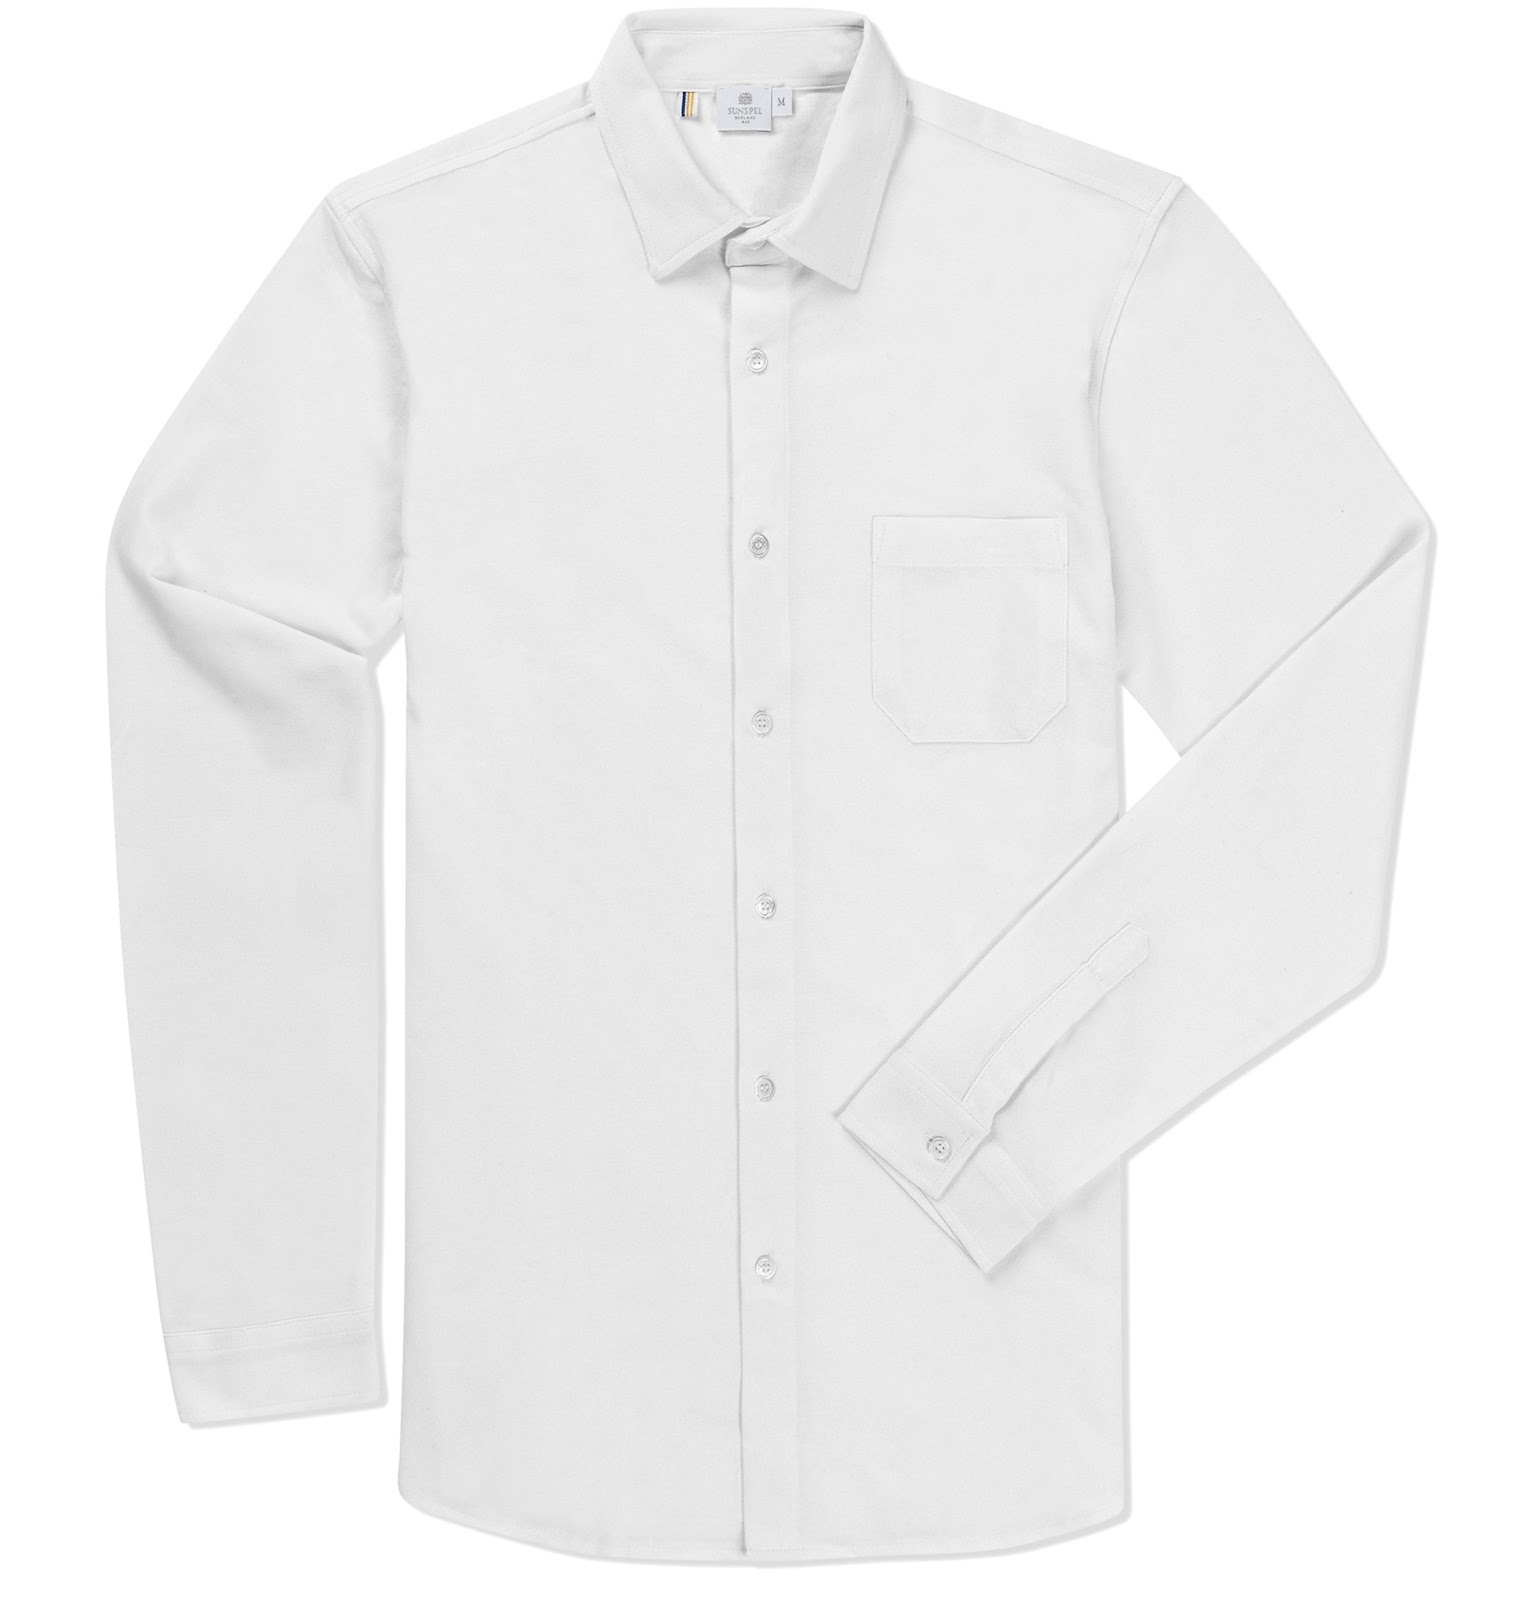 white shirt | Gents Among Men